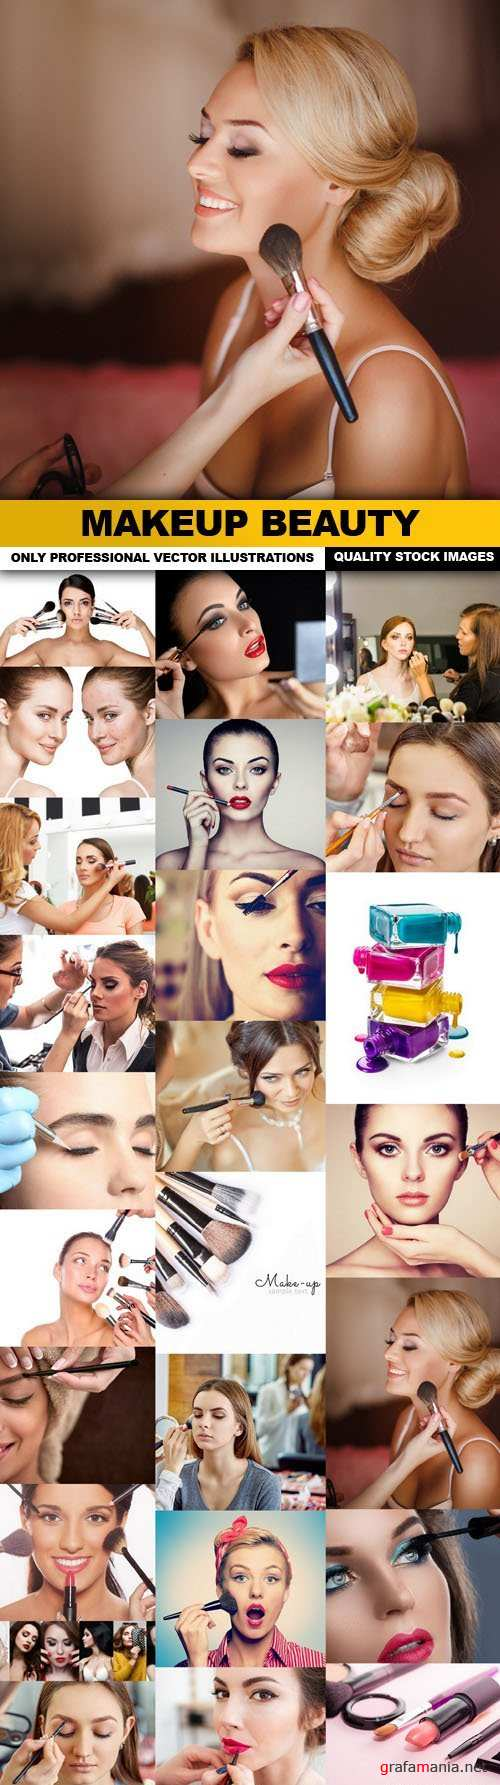 Makeup Beauty - 25 HQ Images